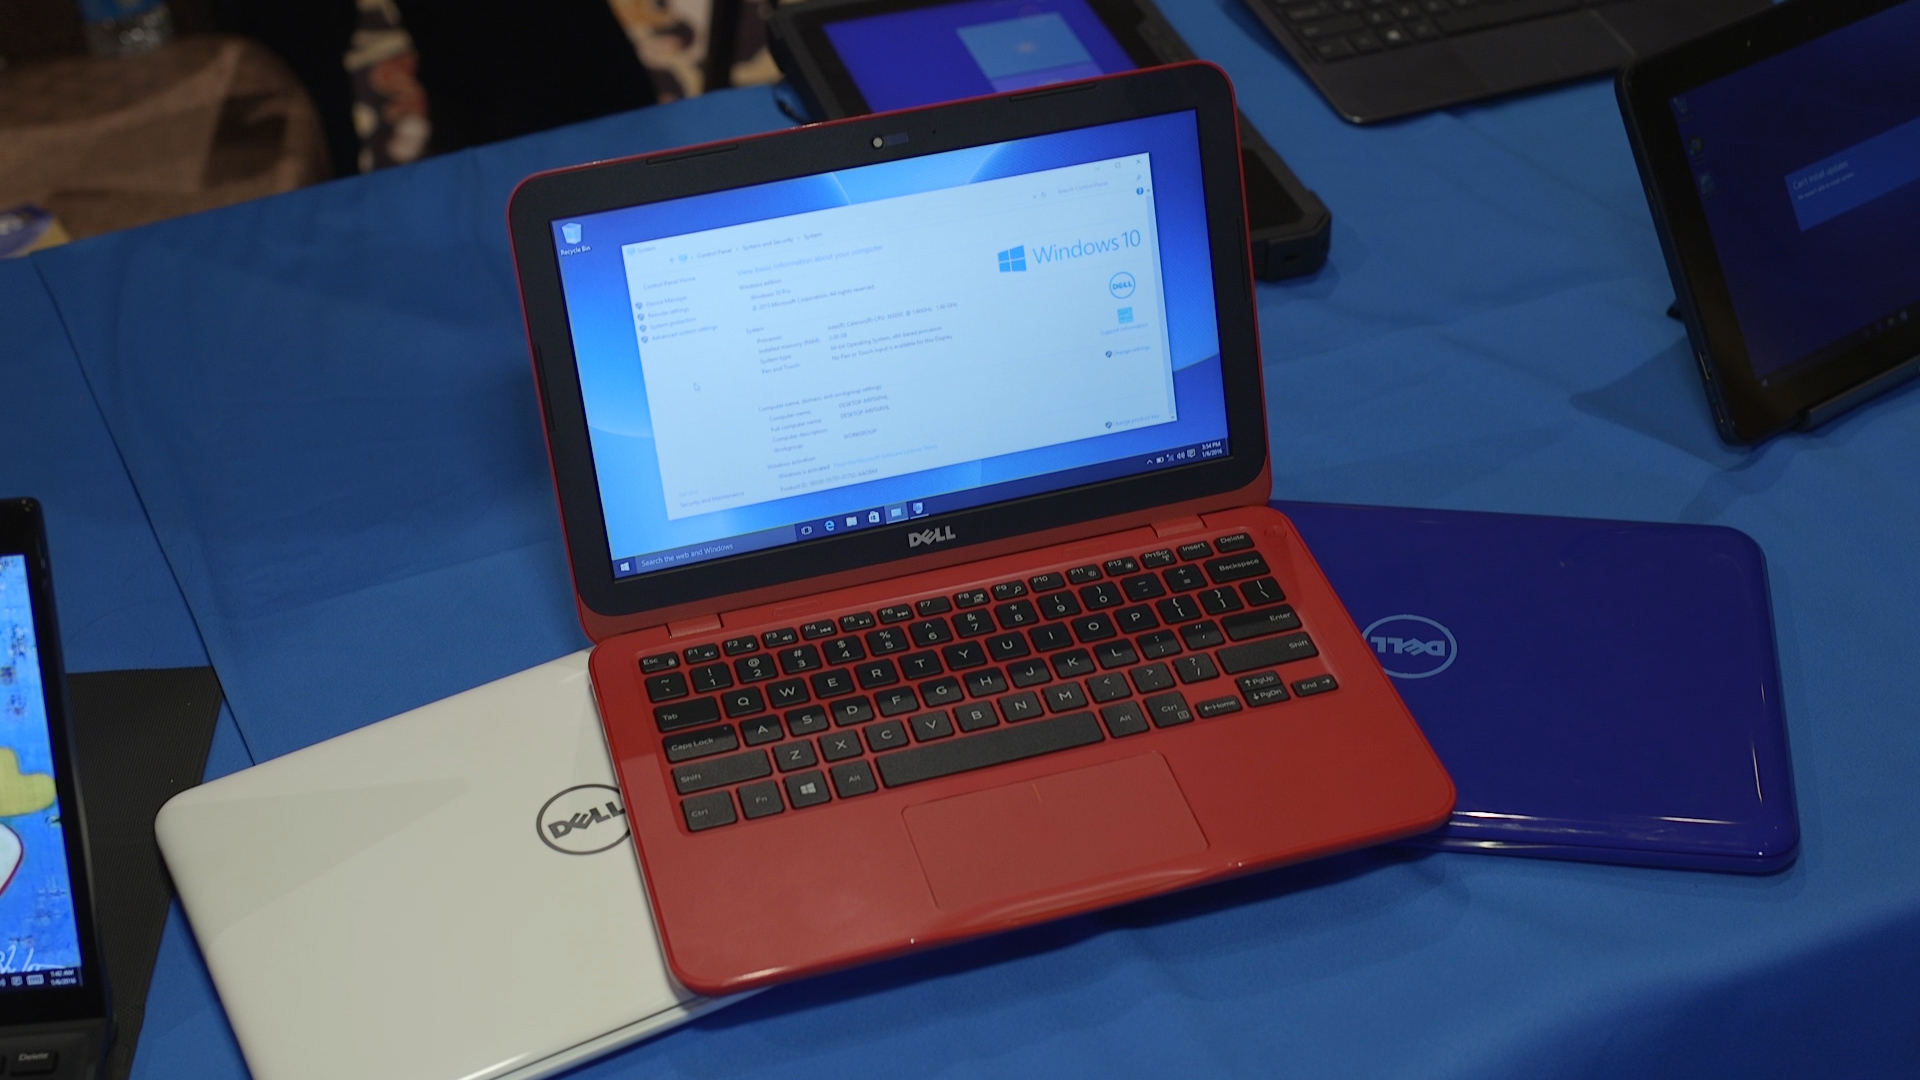 Video: Dell's $199 Inspiron 11 3000 looks like a solid budget laptop